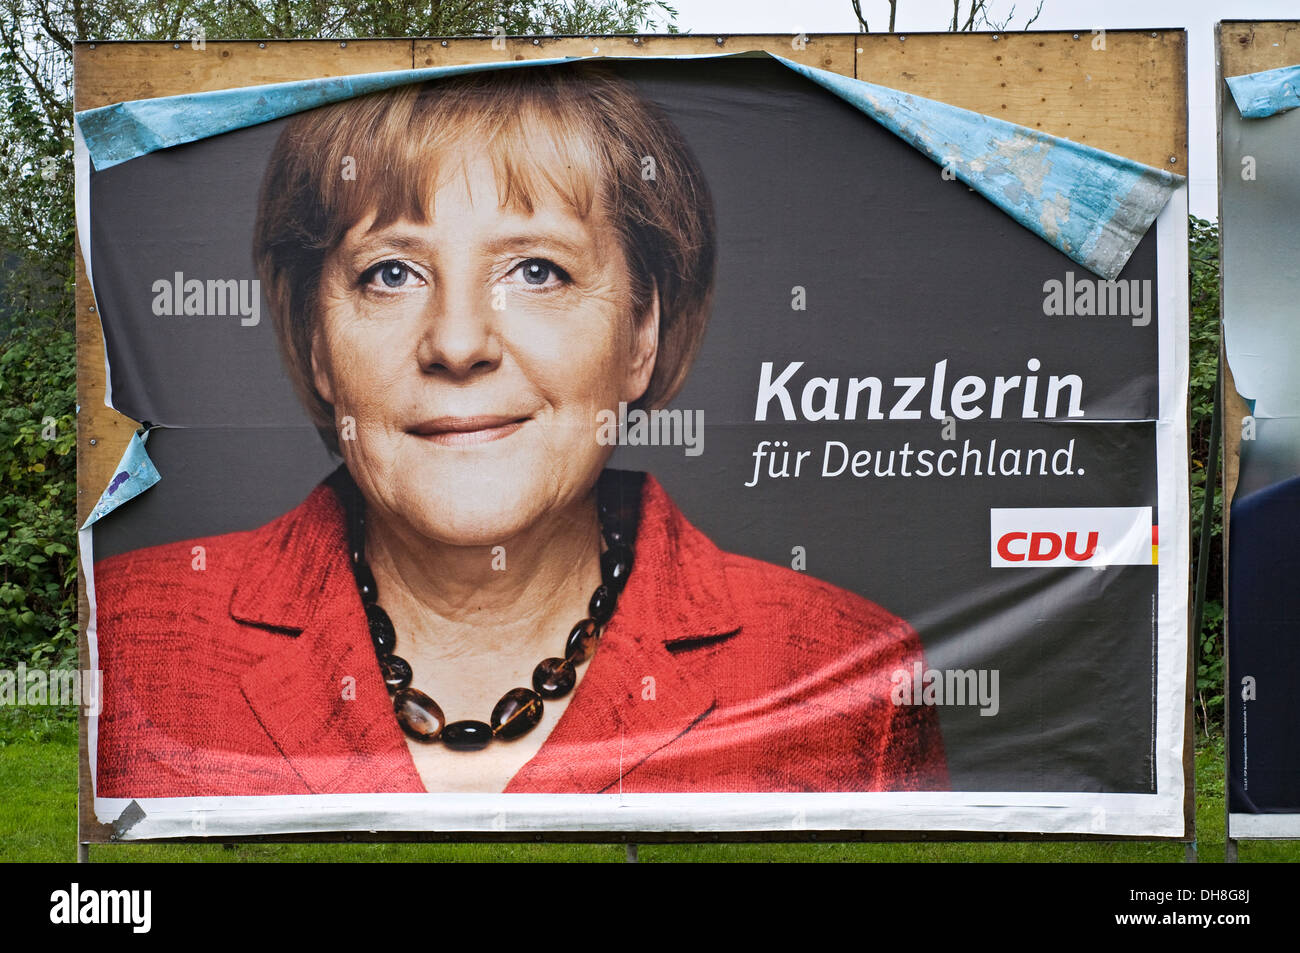 German Chancellor Angela Merkel billboard from German general elections 2013. Stock Photo